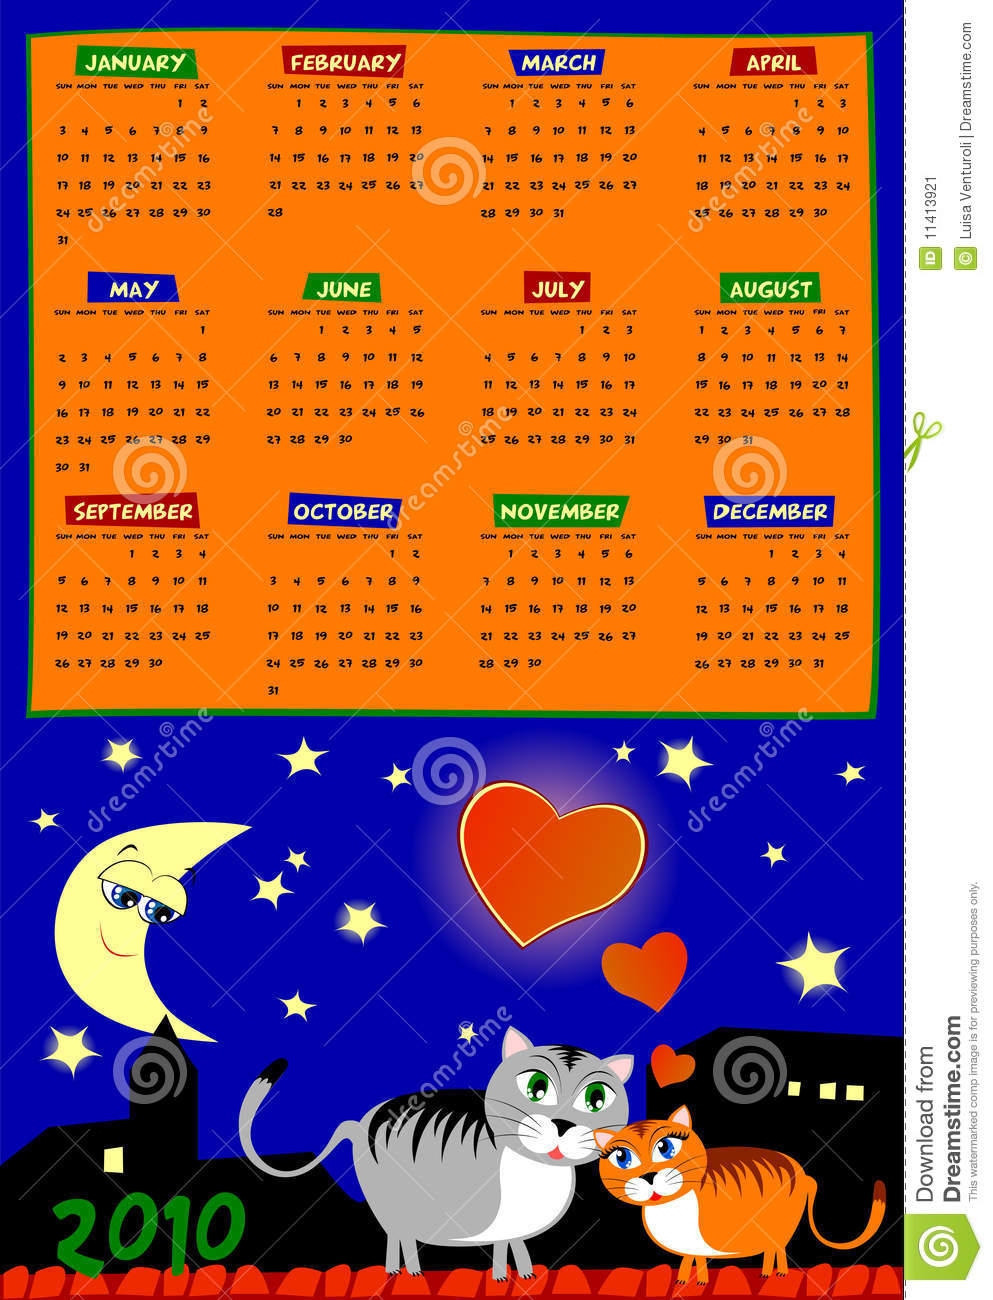 Next Year Calendar : Calendar of next year stock image